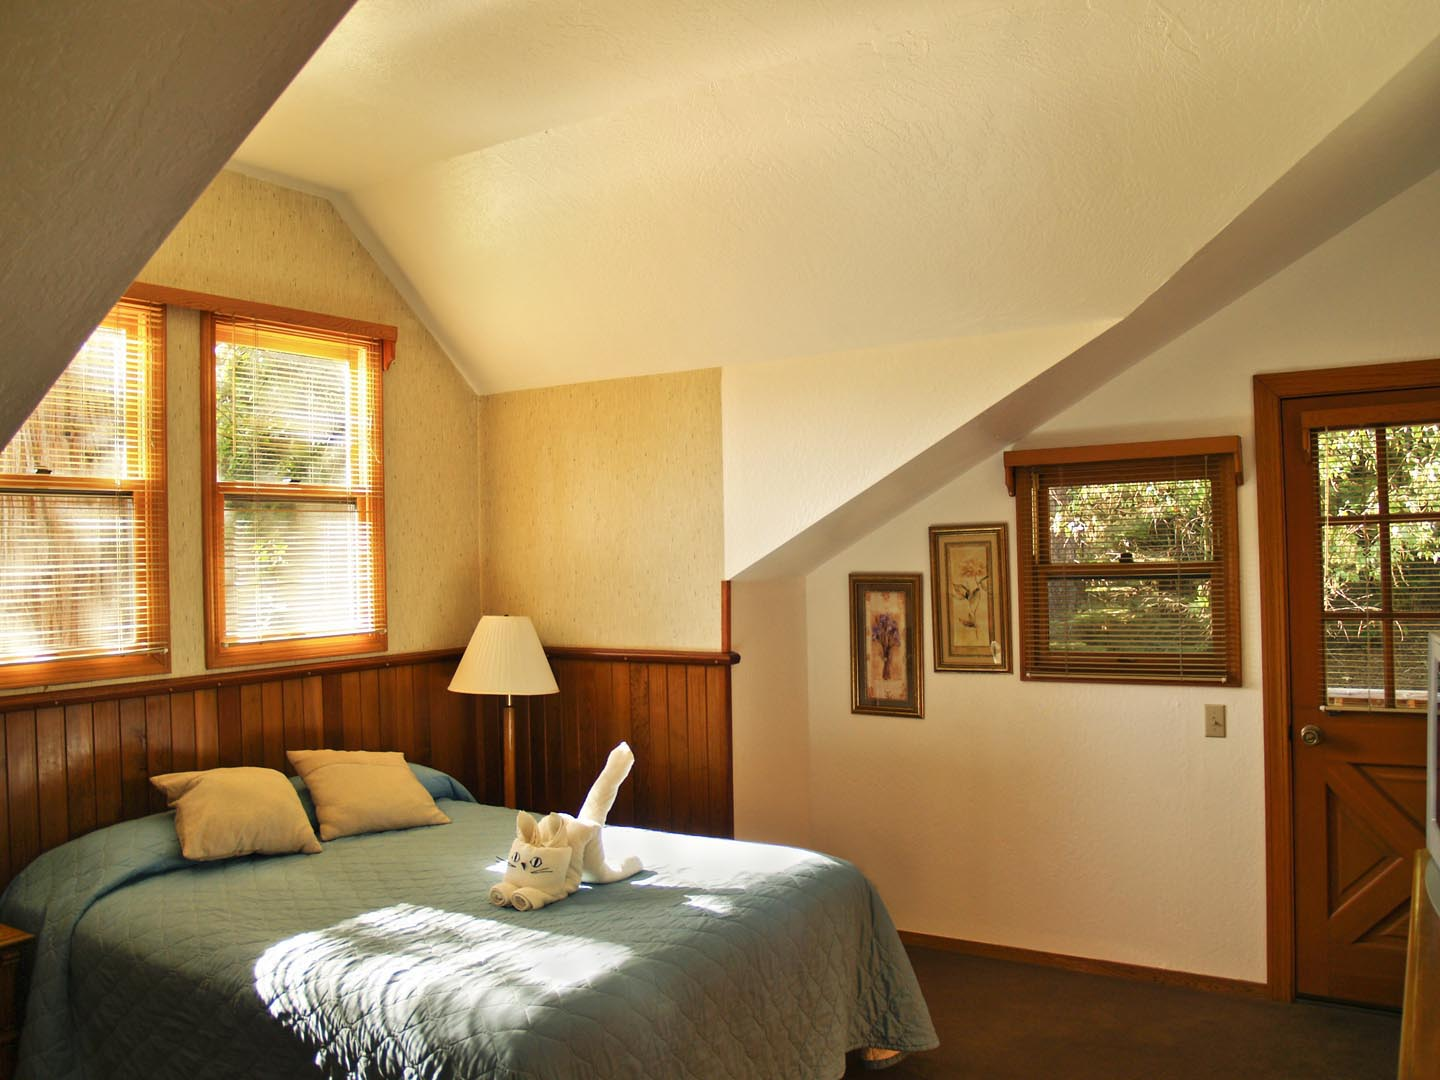 A charming view of the accommodations at VRI's Mountain Retreat Resort in California.